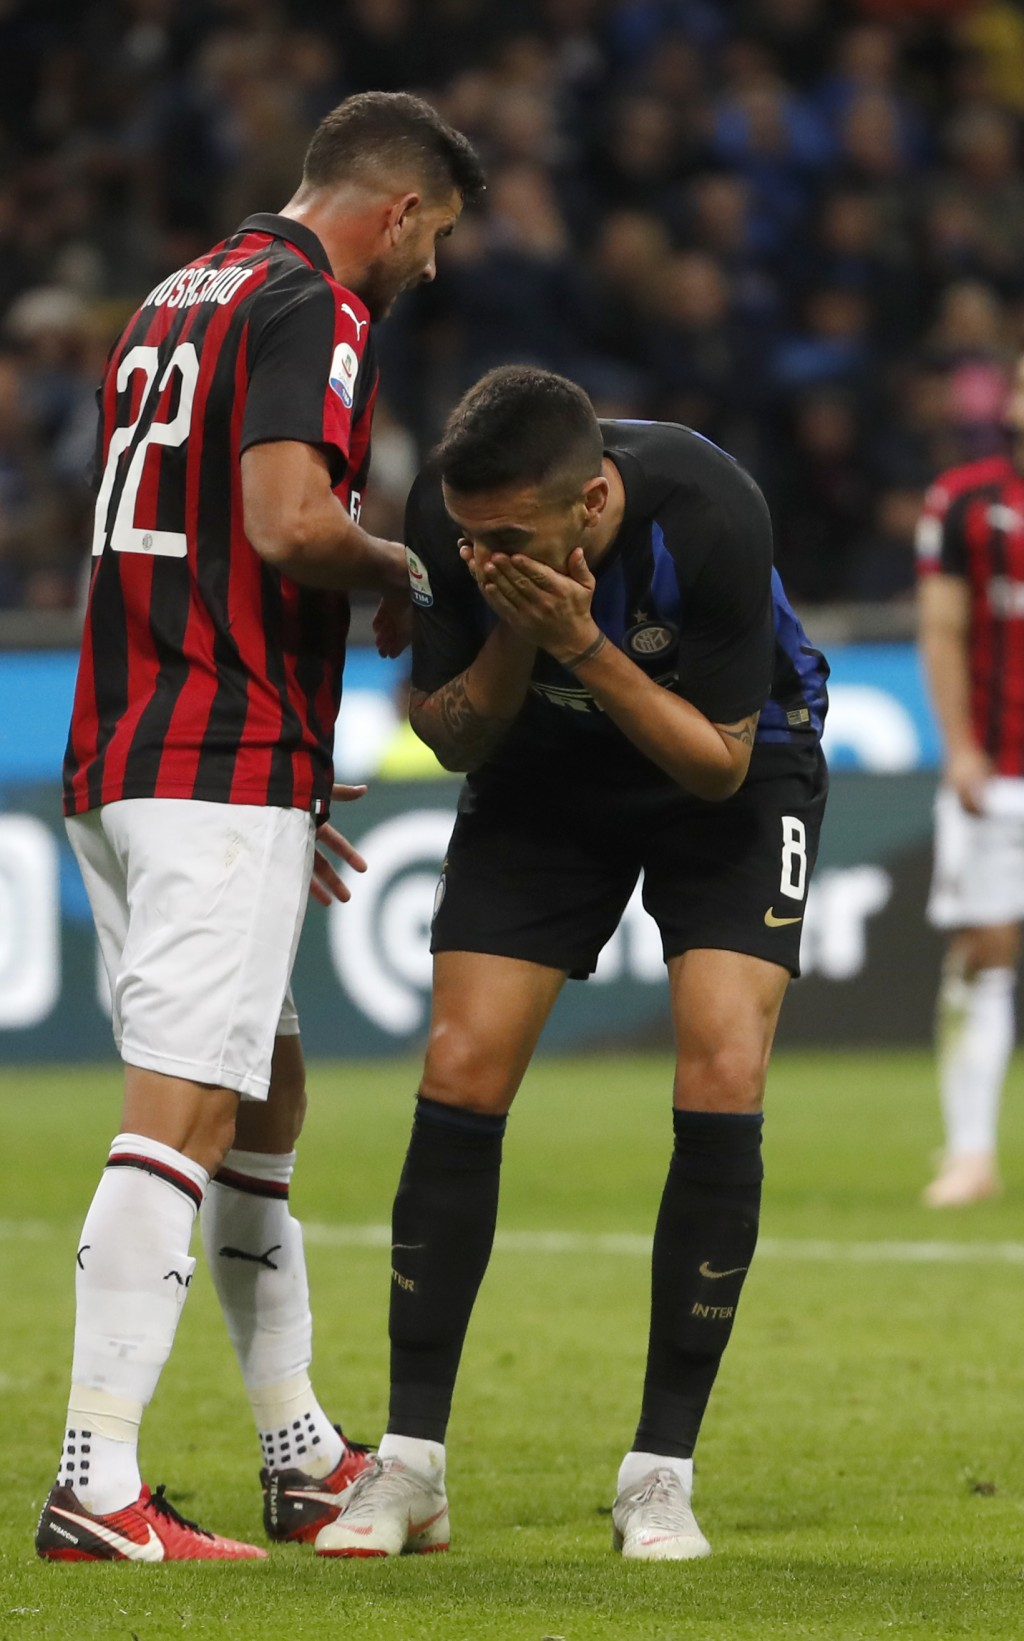 Inter Milan's Matias Vecino reacts after missing a scoring chance during the Serie A soccer match between Inter Milan and AC Milan at the San Siro Sta